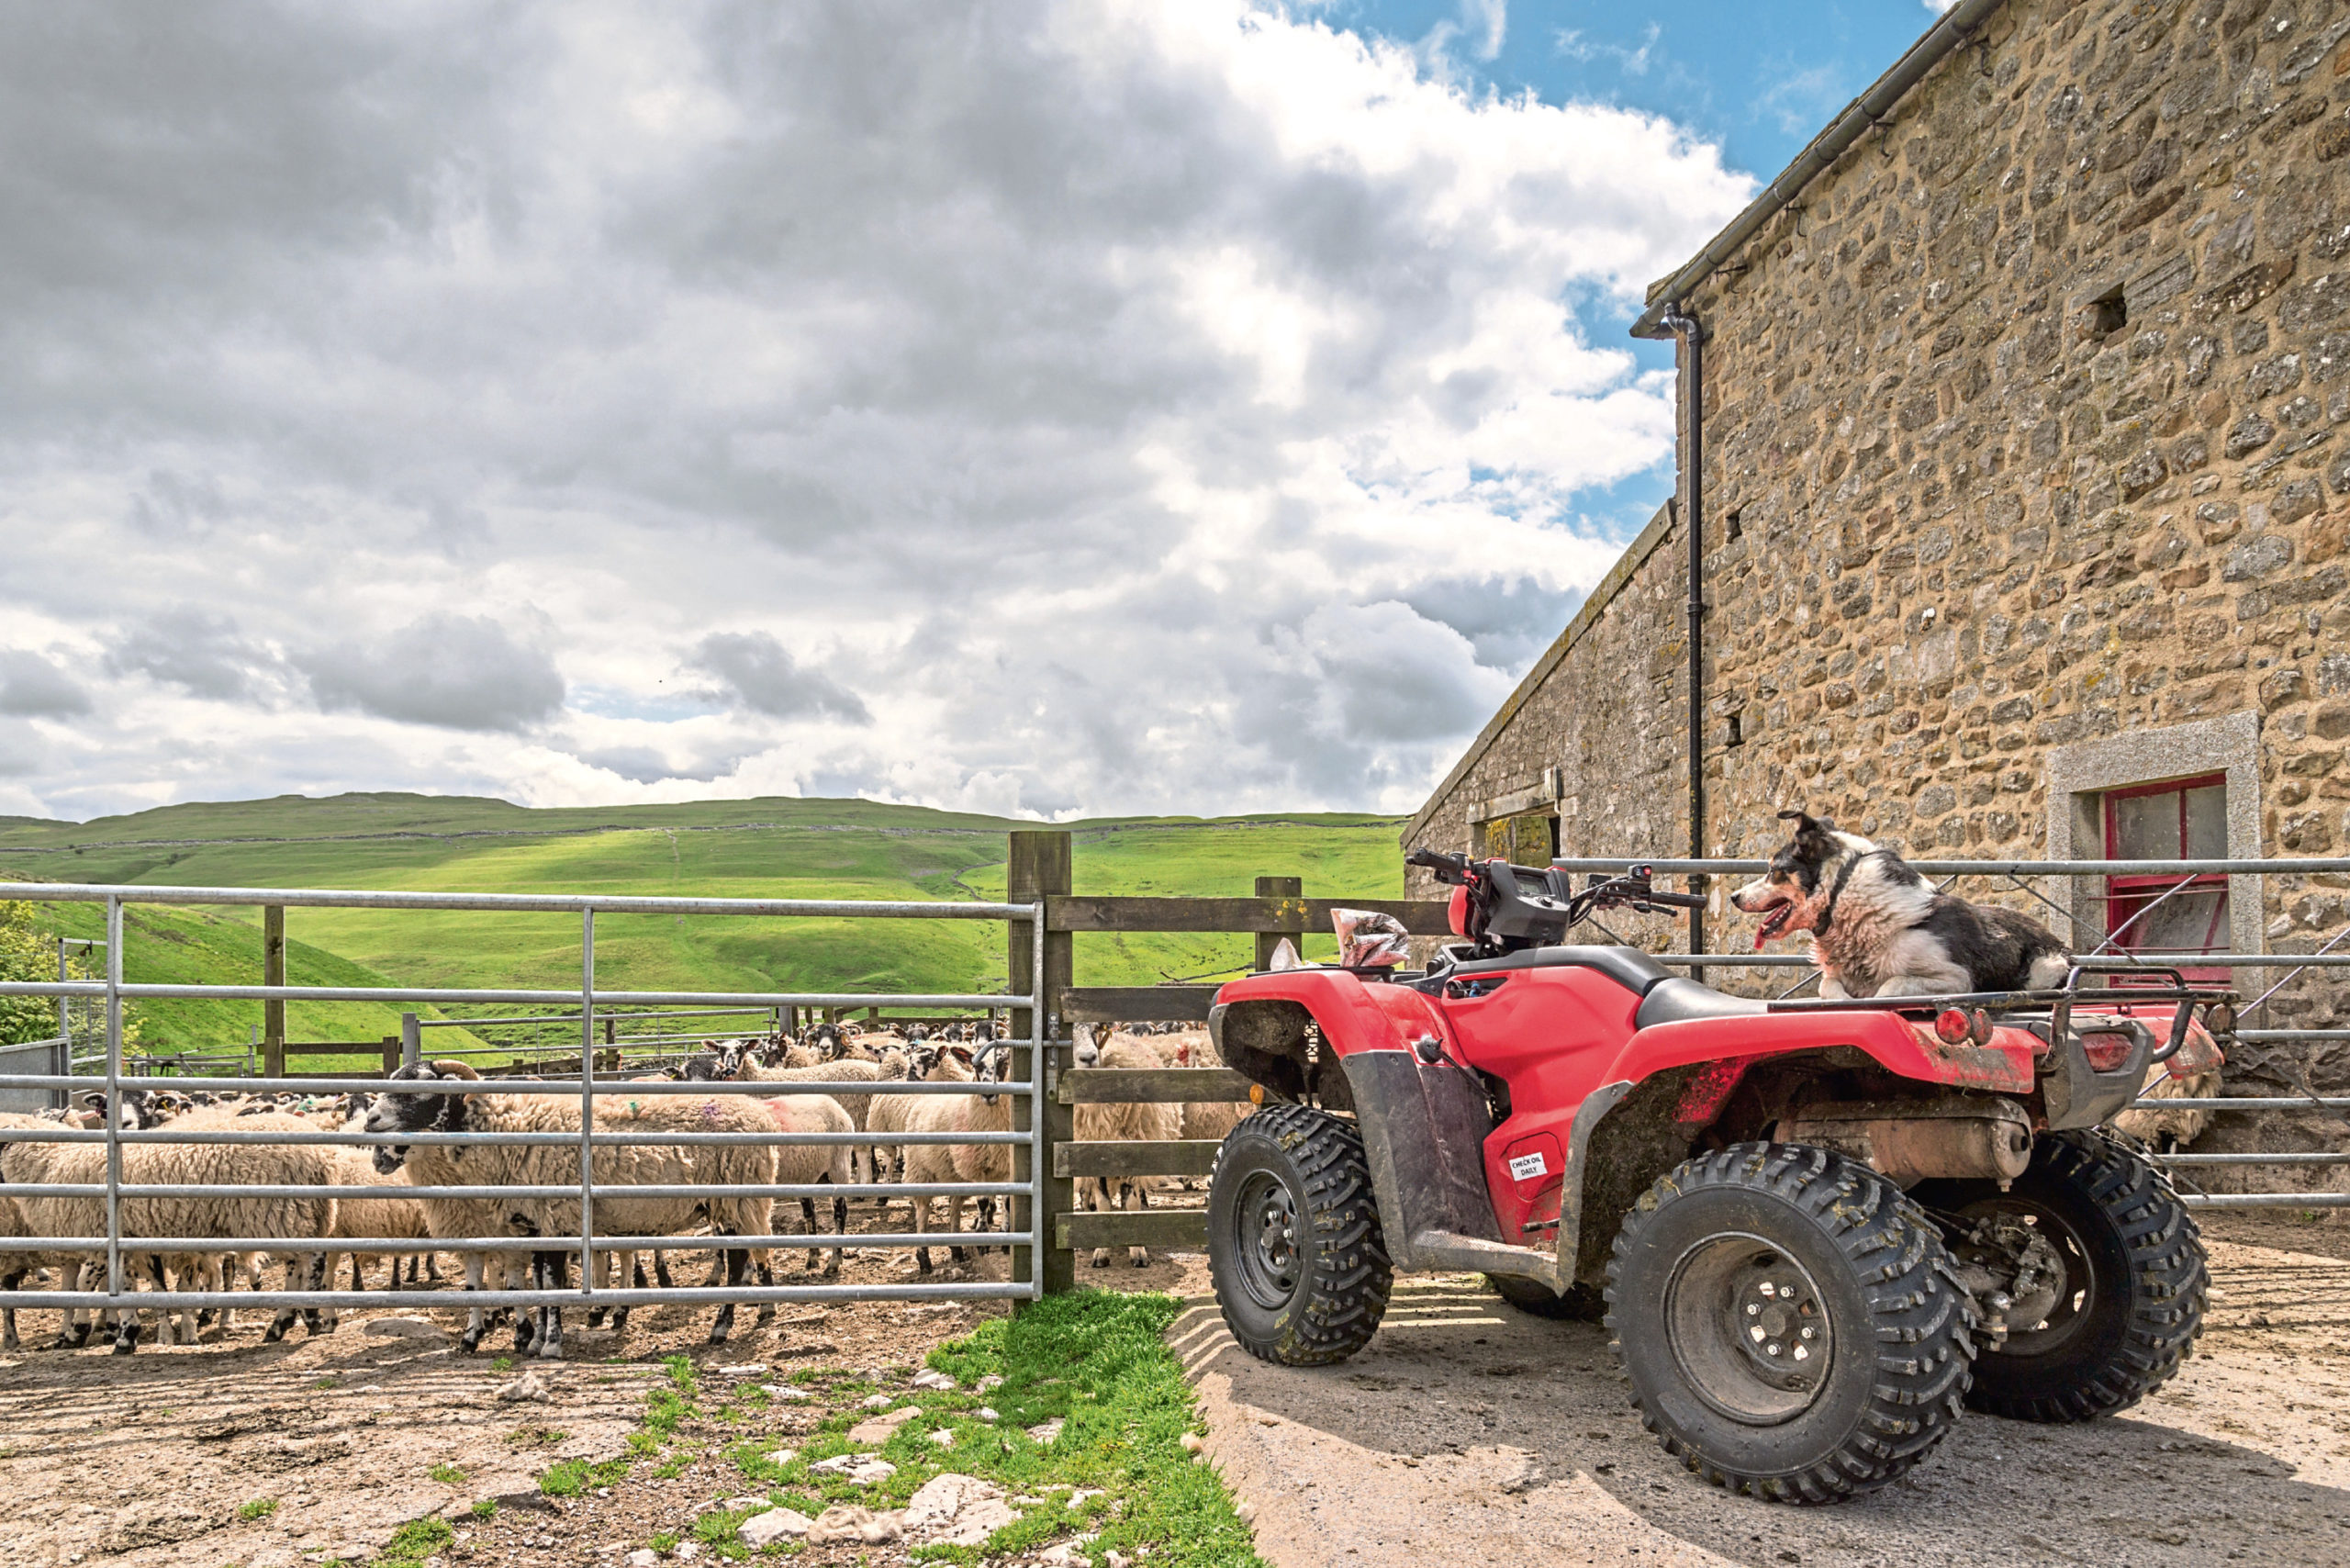 A survey found 71% of respondents believe farmers are doing a good job producing food during the coronavirus pandemic.